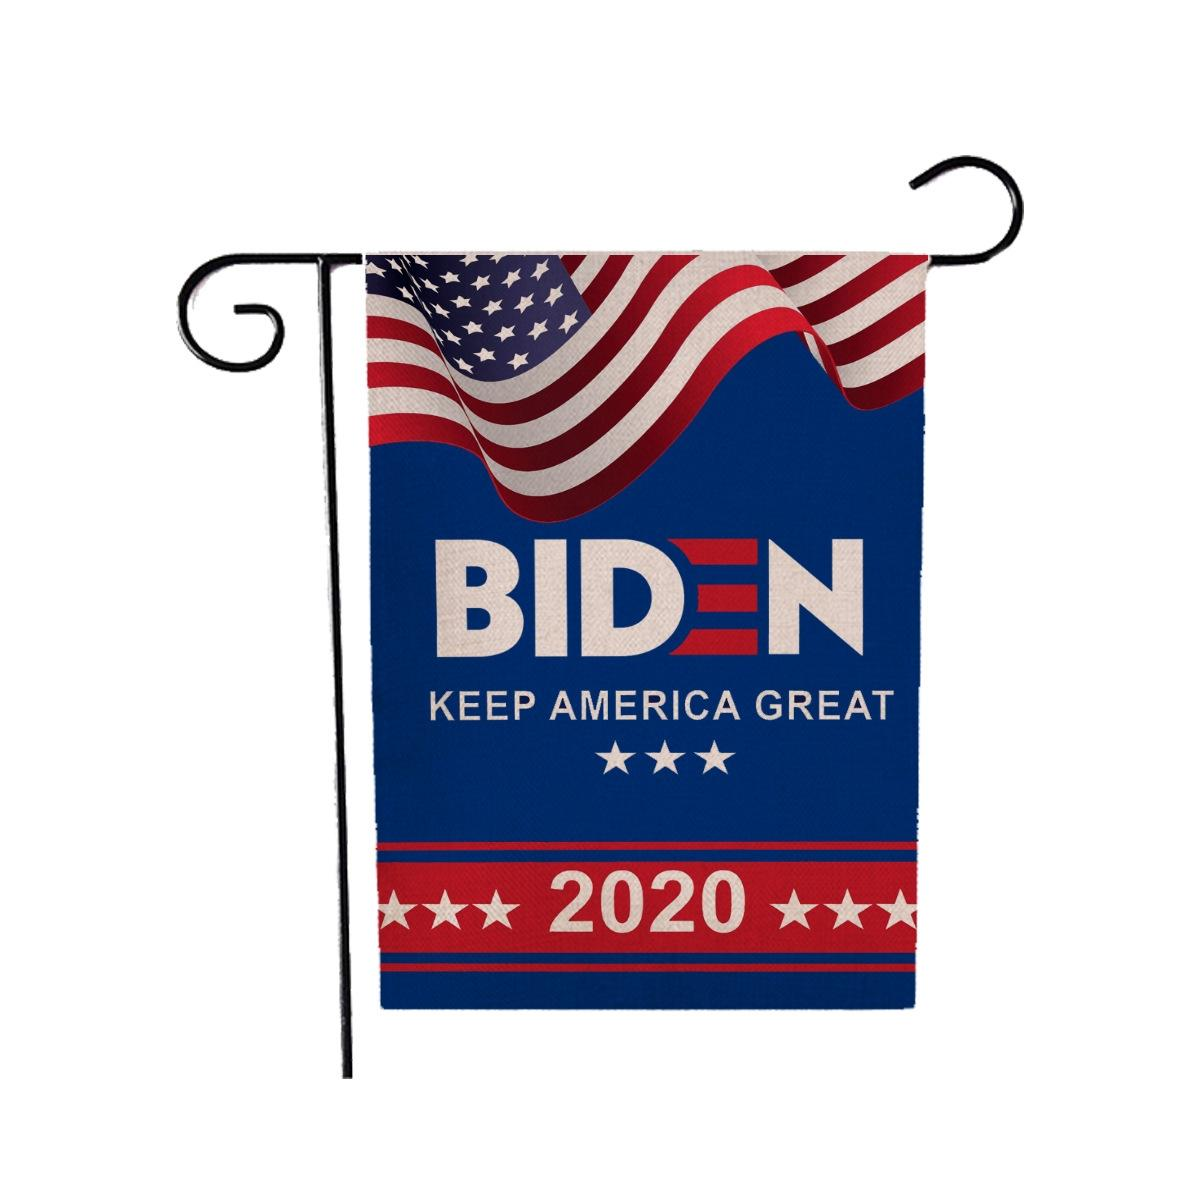 9 stili Biden 2020 Bandiera Keep America Great Again Donne Per Biden 2020 Bandiere Rosso Rosa campagna banner 45 * 30cm Usa Donald Biden regalo Sup # 867